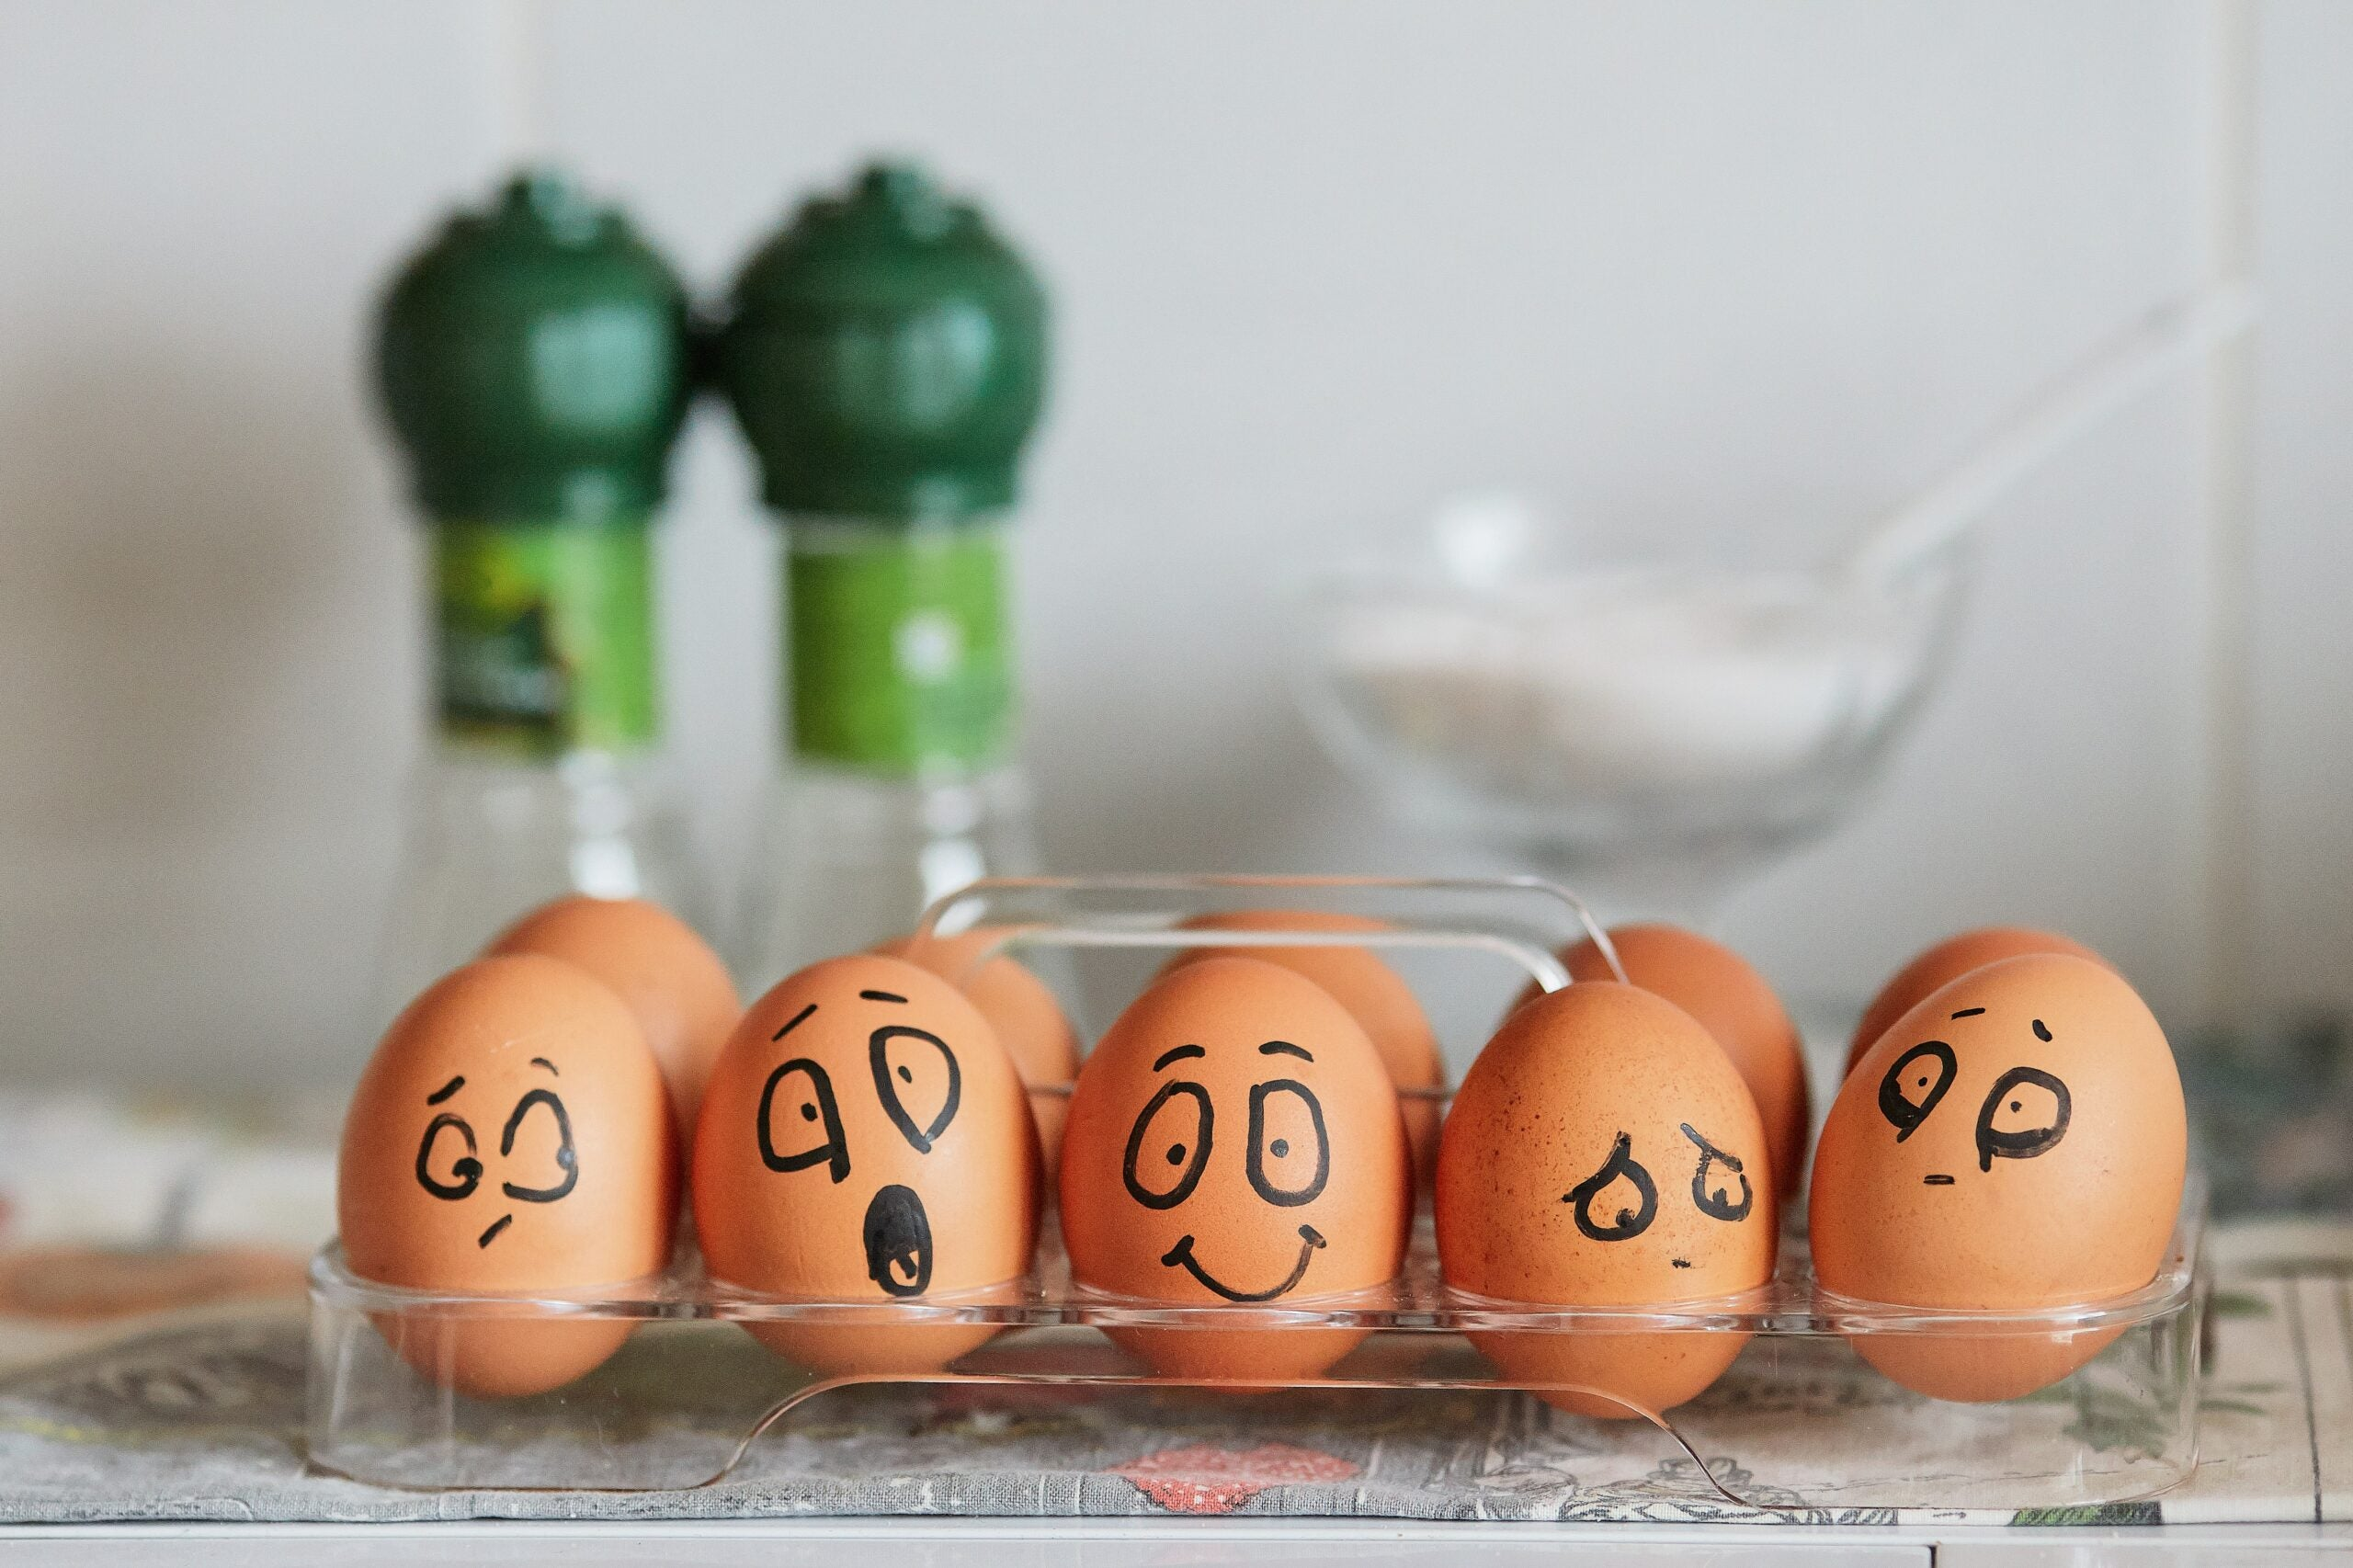 A carton of brown eggs with faces drawn on